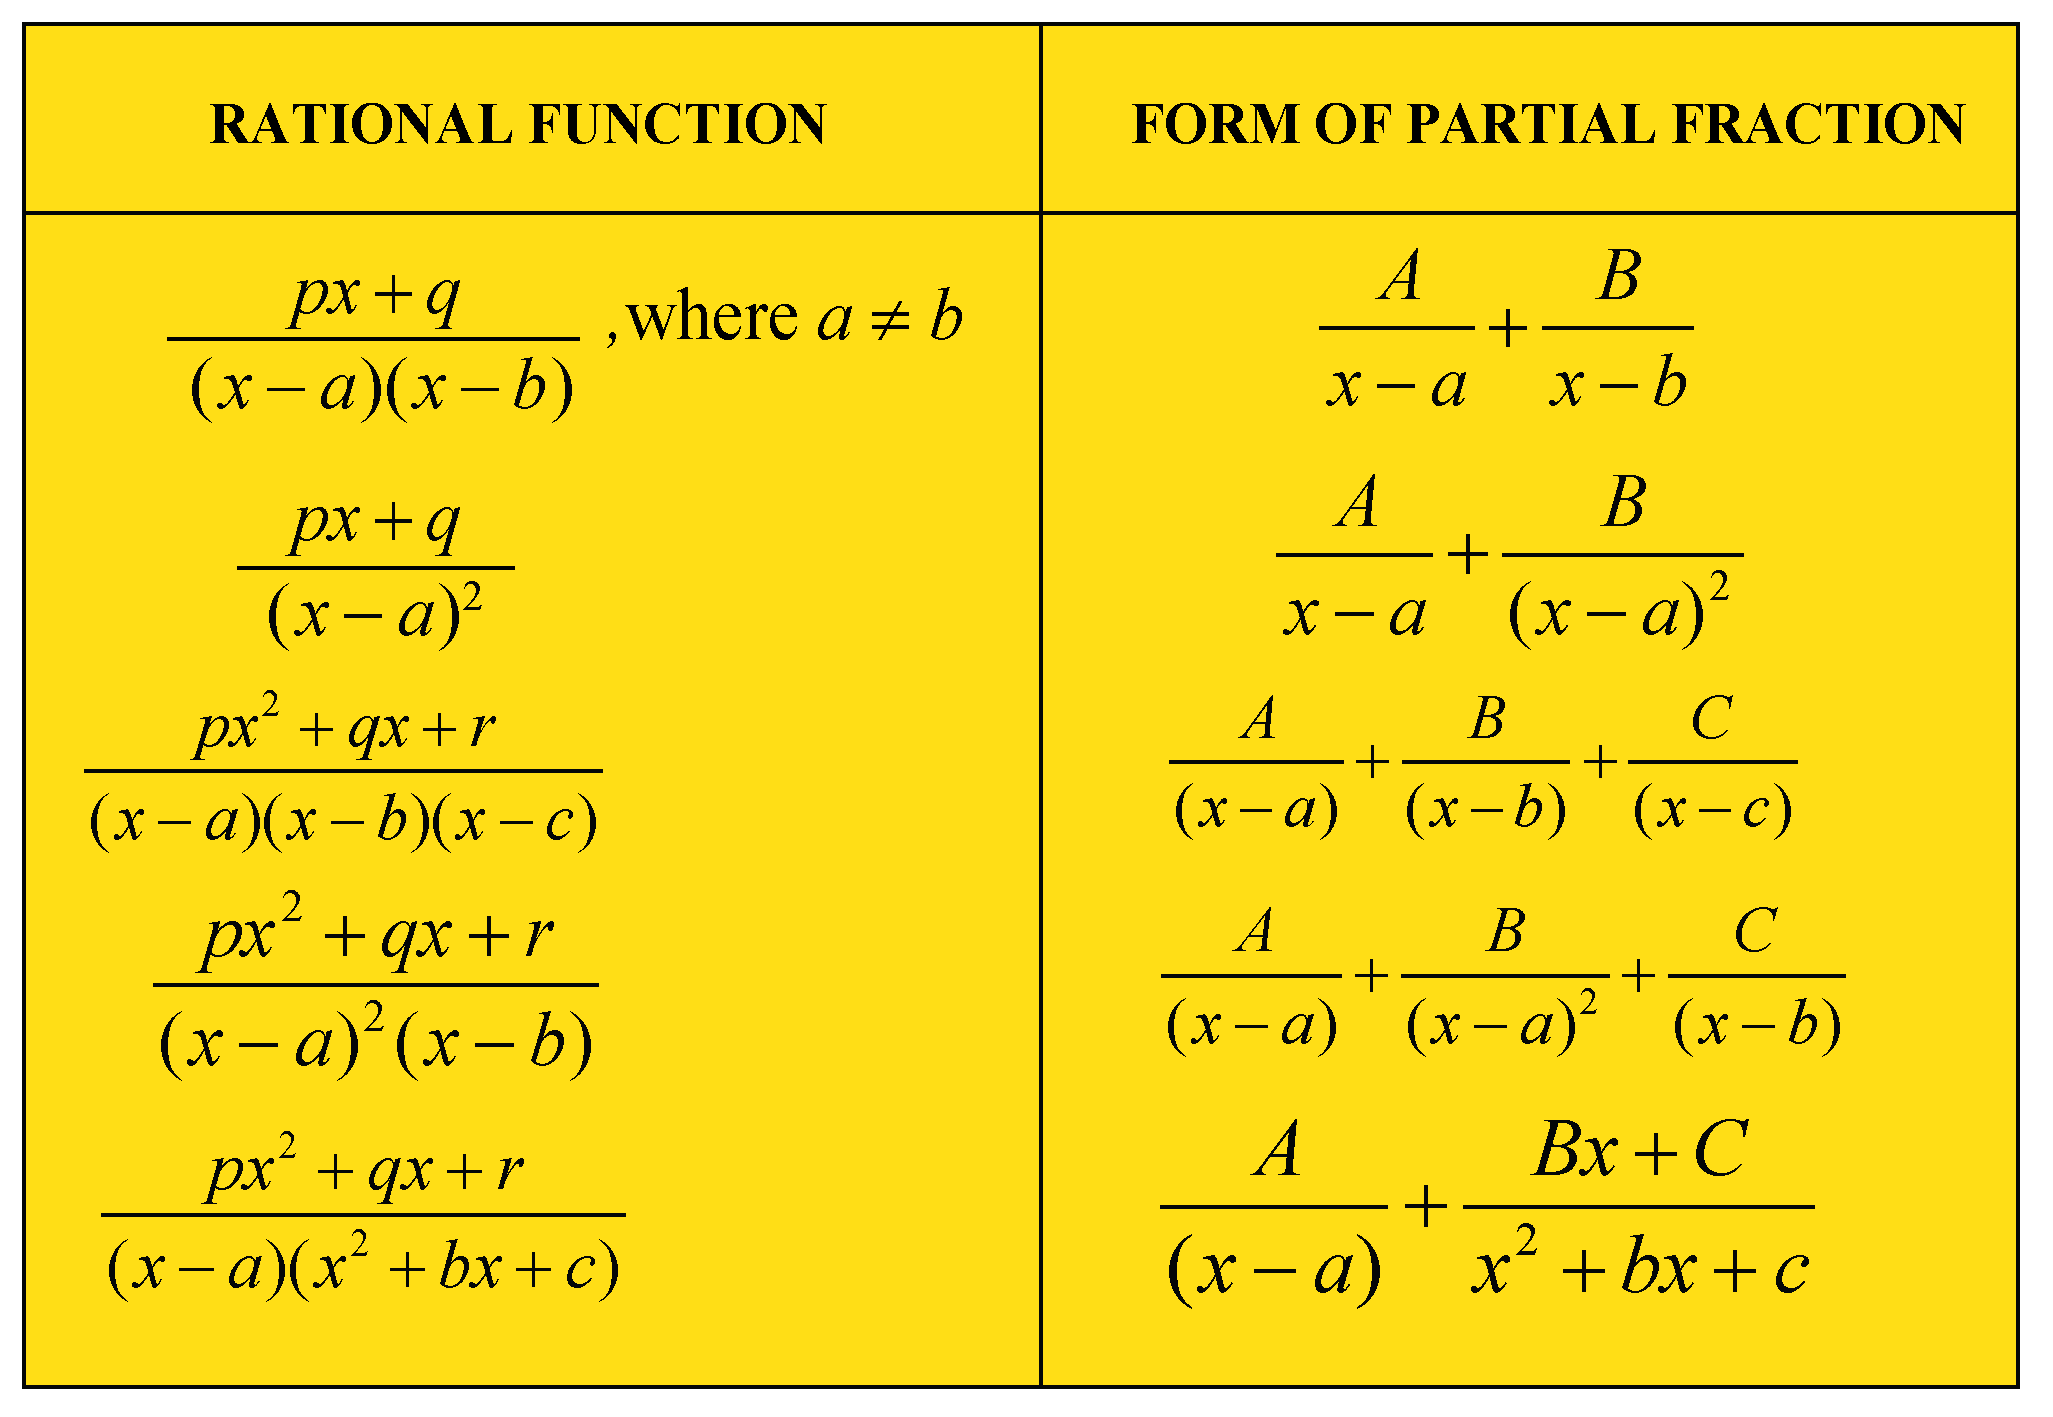 Some Rational Function and its partial frations